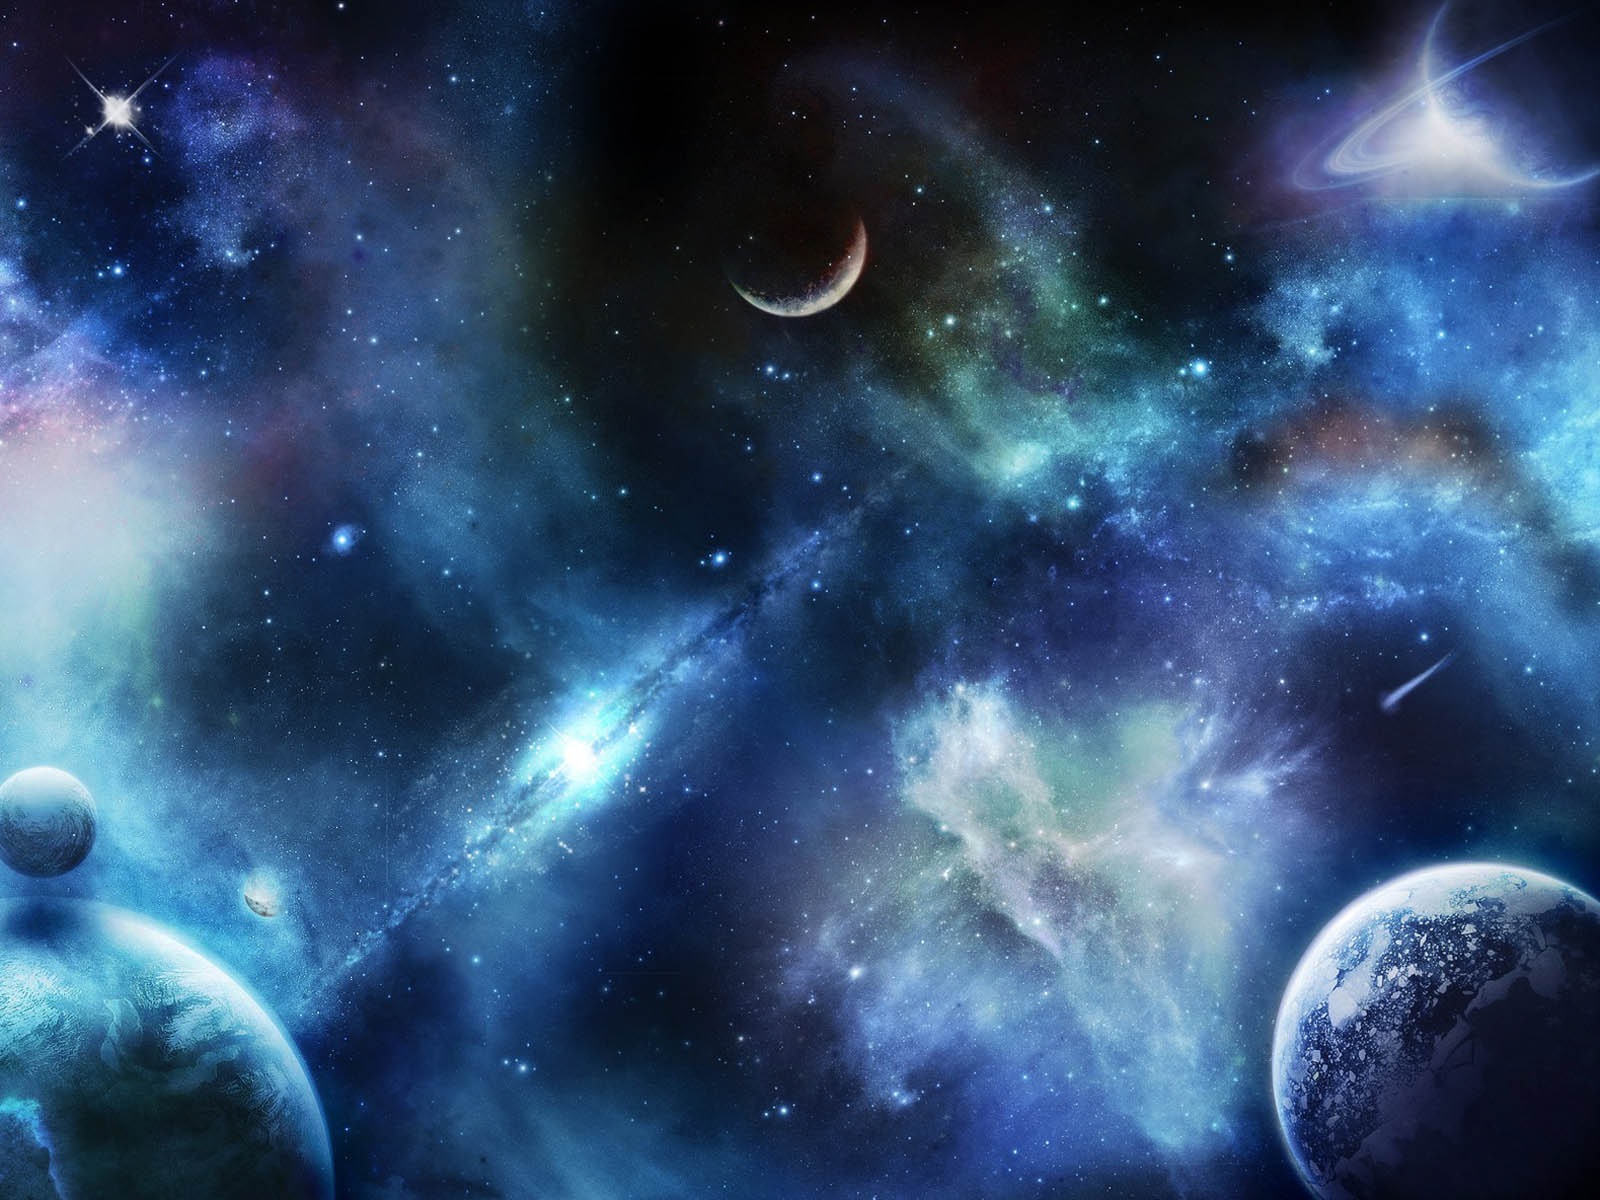 wallpapers Outer Space 1600x1200